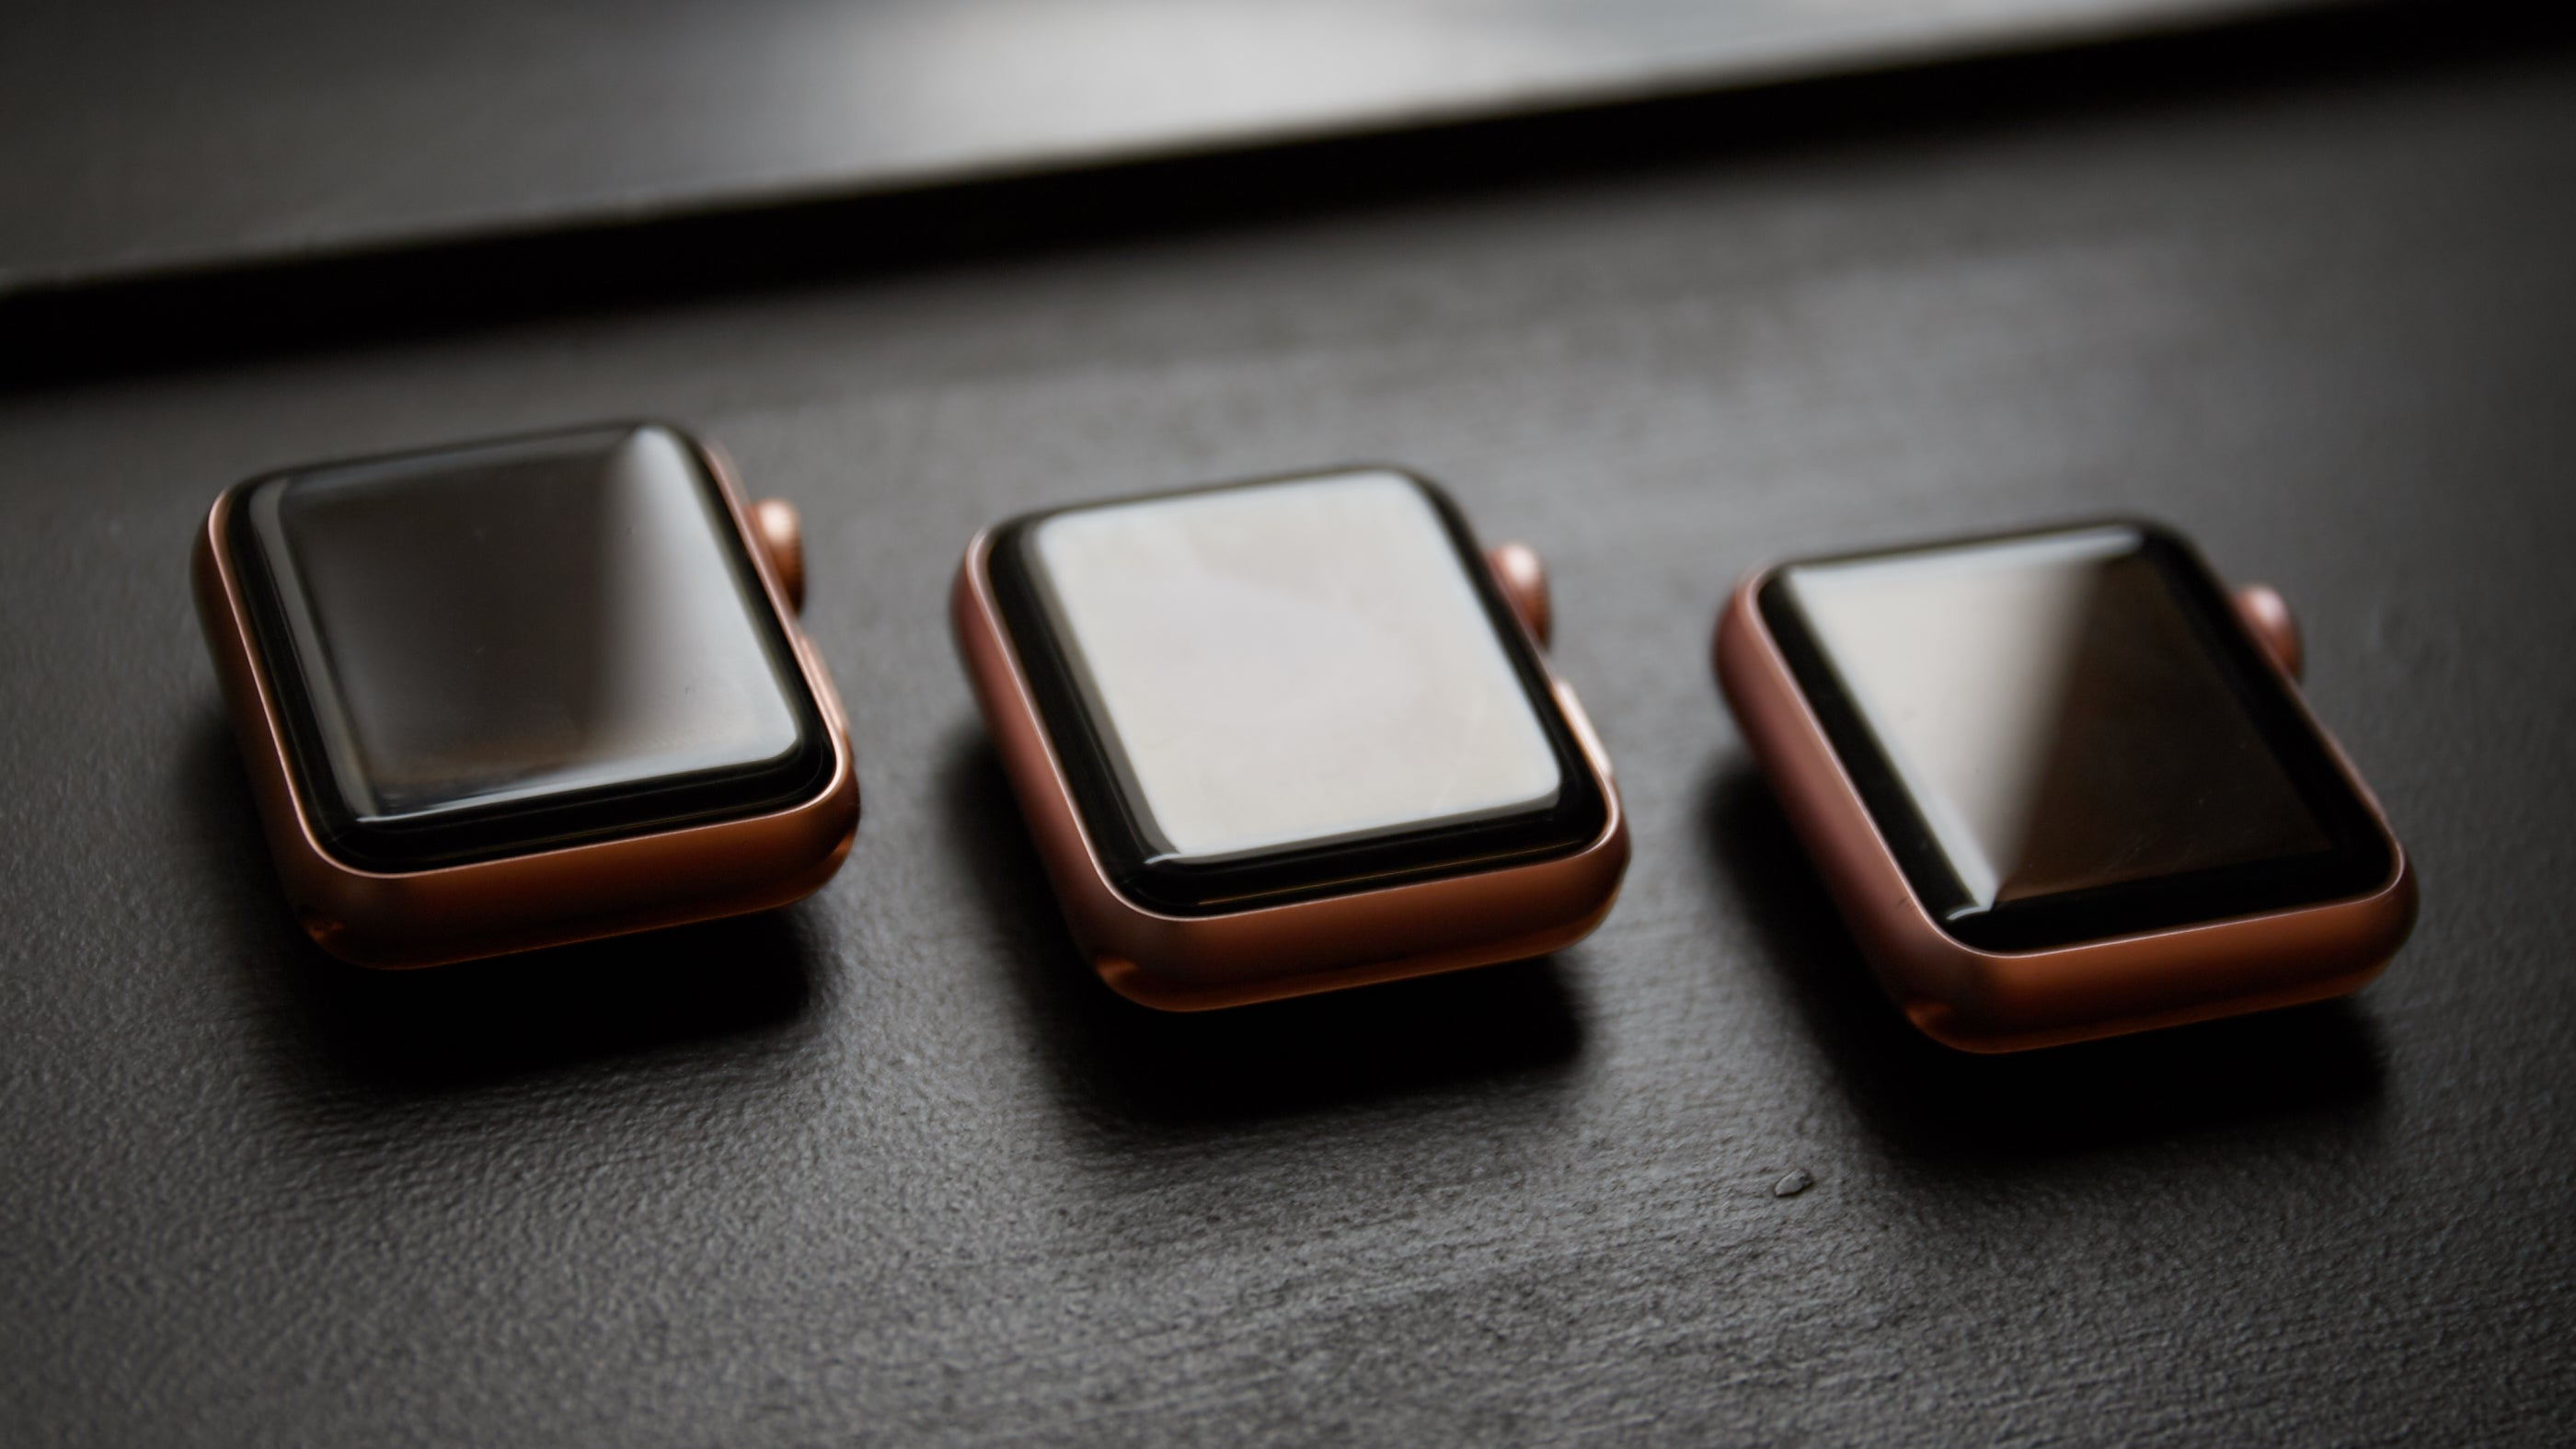 apple-watch apps ios smartwatches wearables